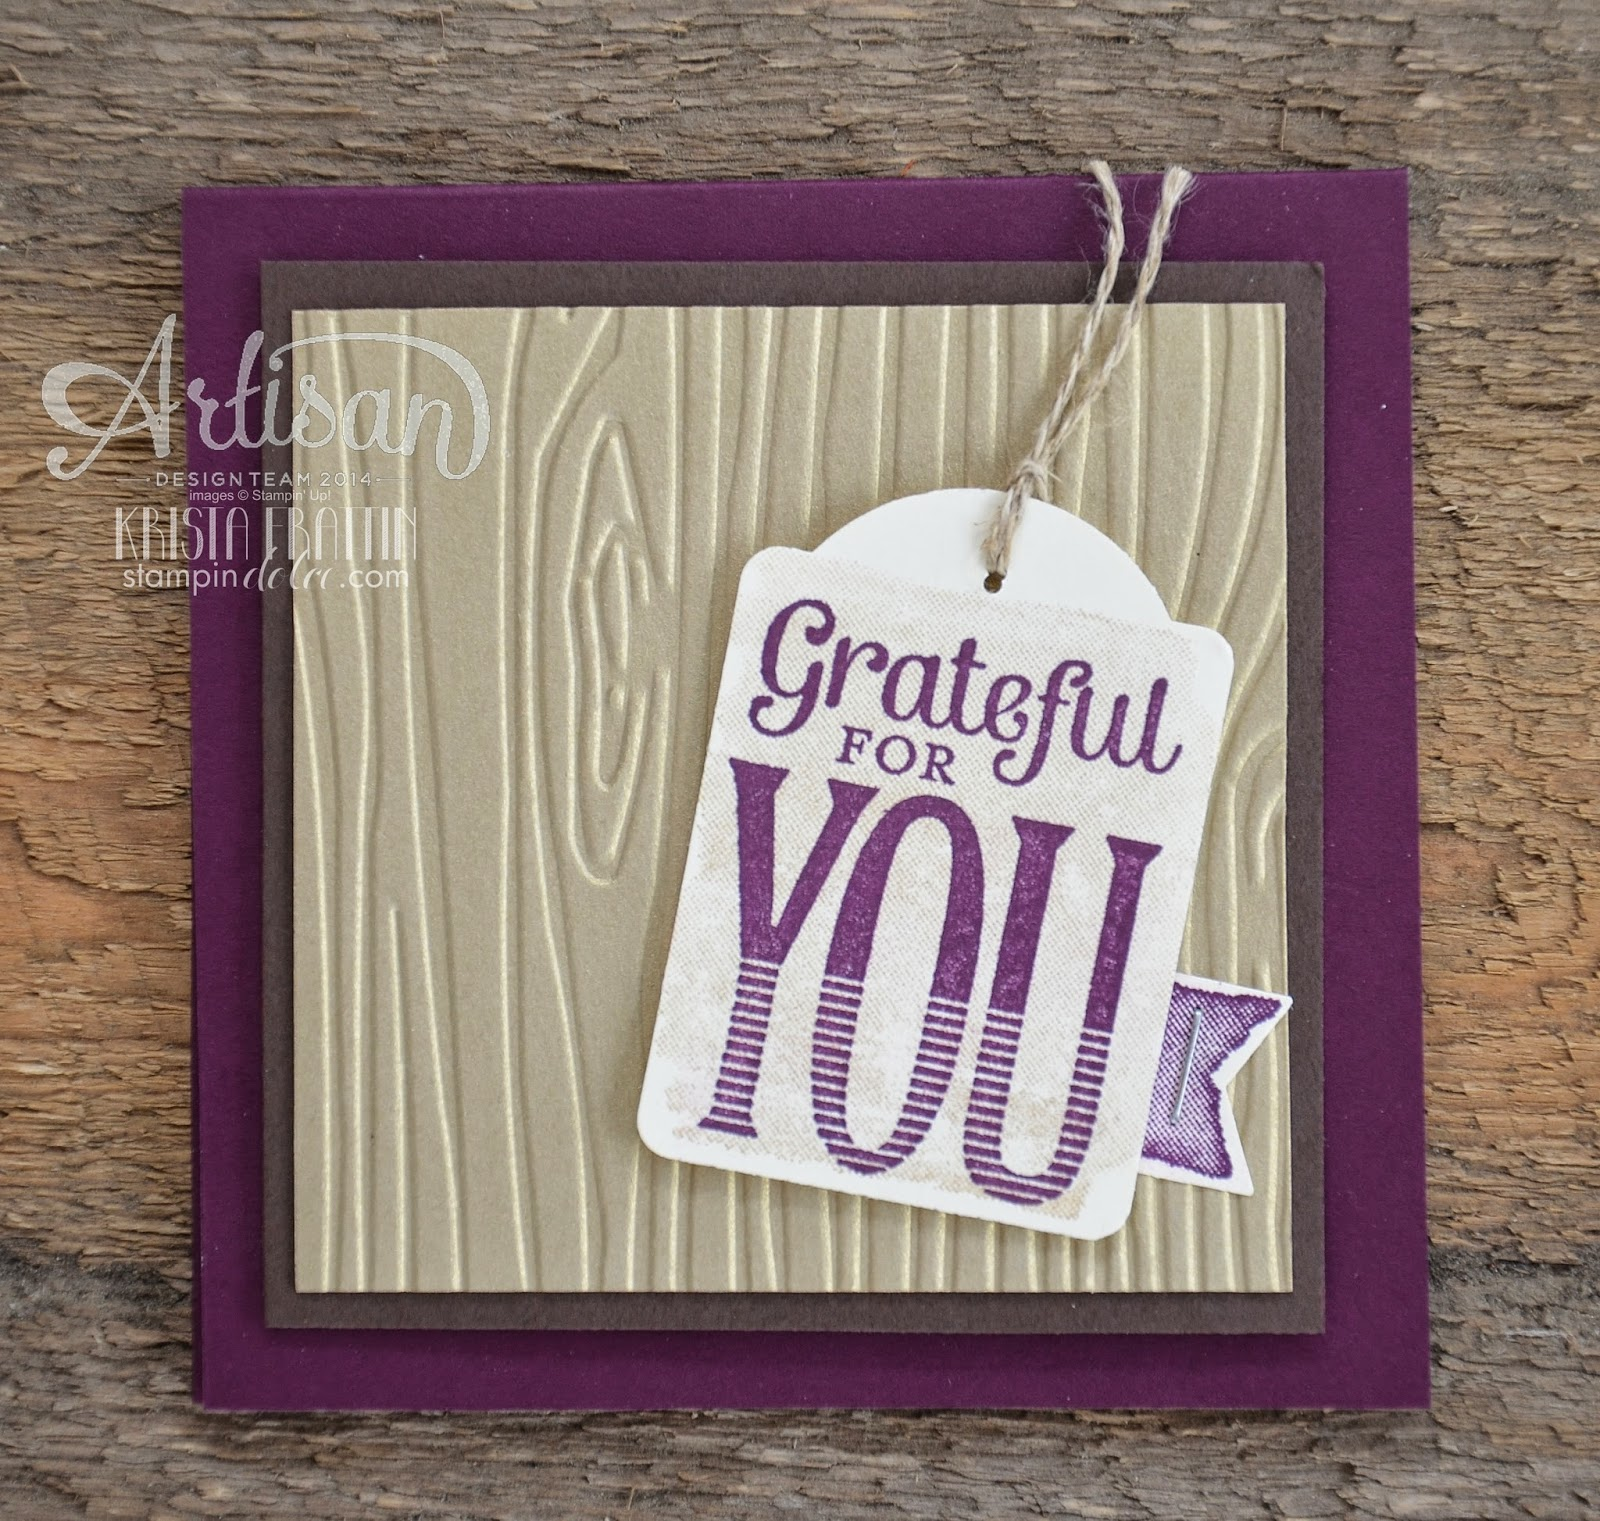 Stem School Harlow: Stampin' Dolce: Grateful Scrapbook Layout